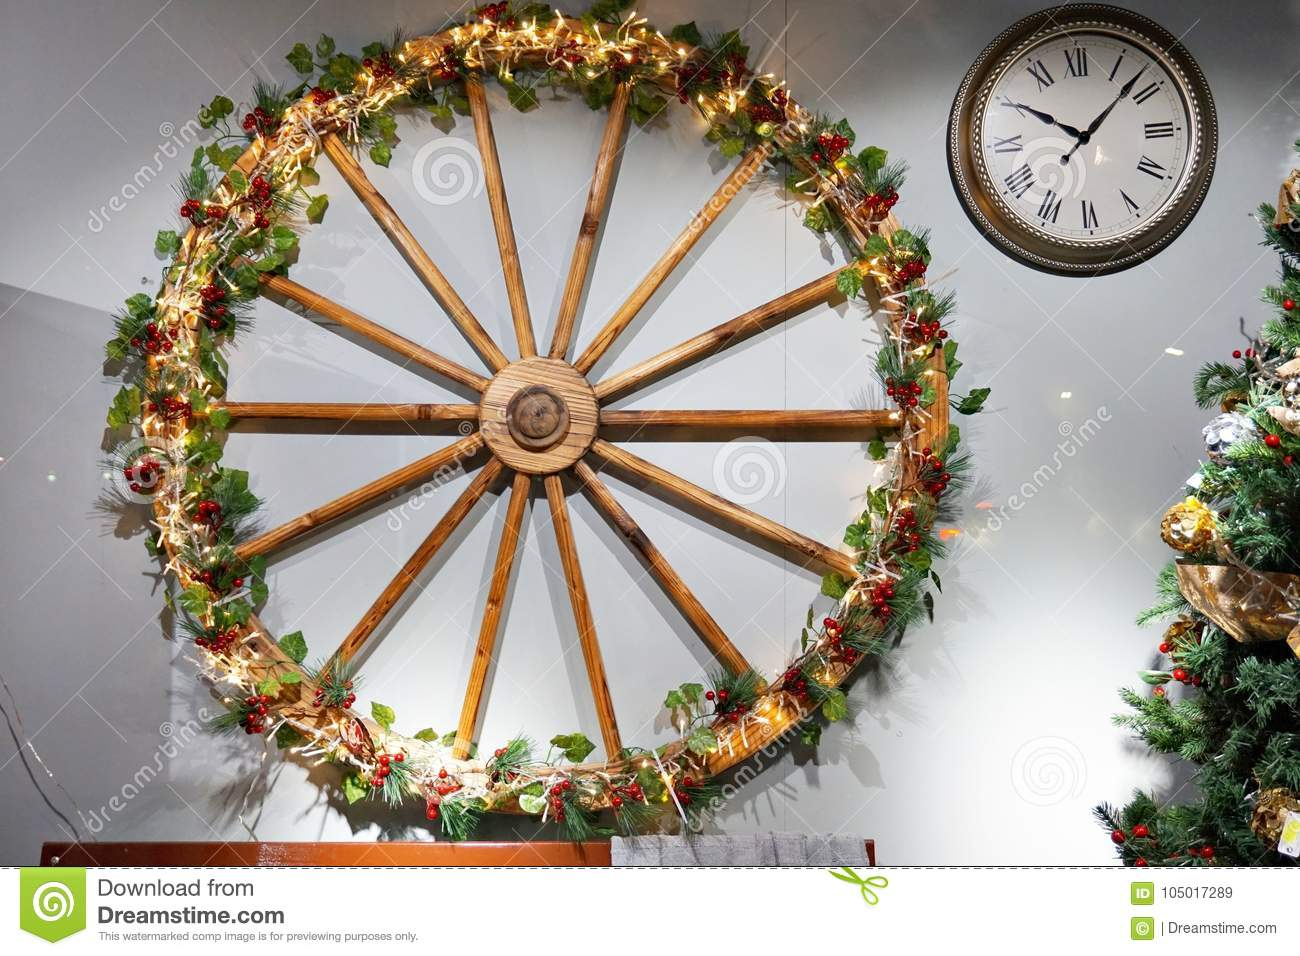 Christmas Wagon Wheel Photos Free Royalty Free Stock Photos From Dreamstime